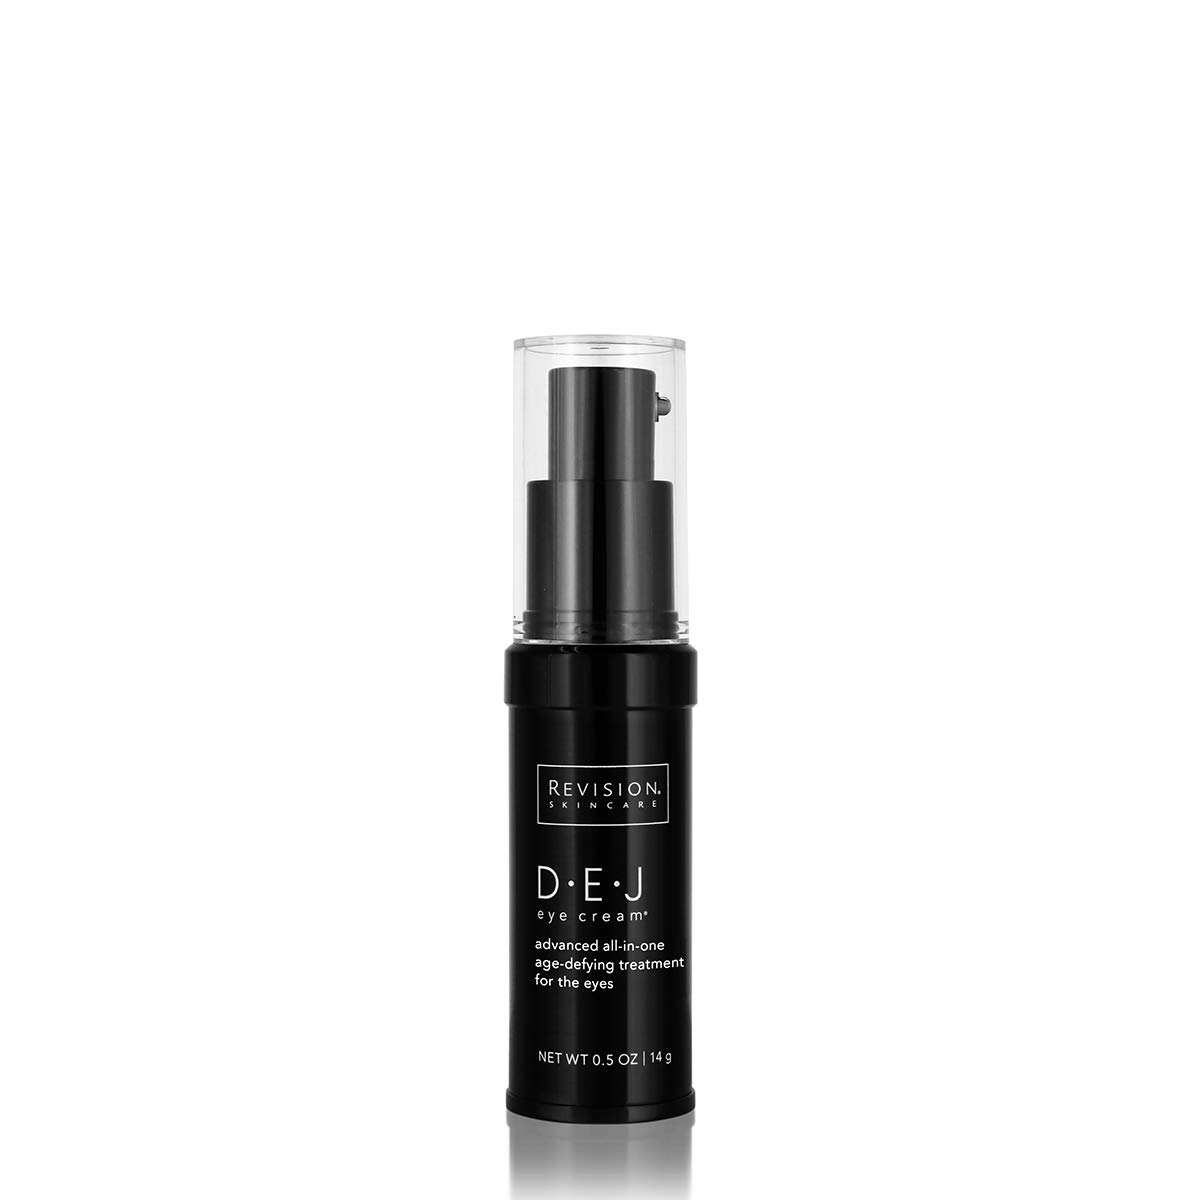 Revision Skincare D.E.J. Eye Cream, 0.5 oz